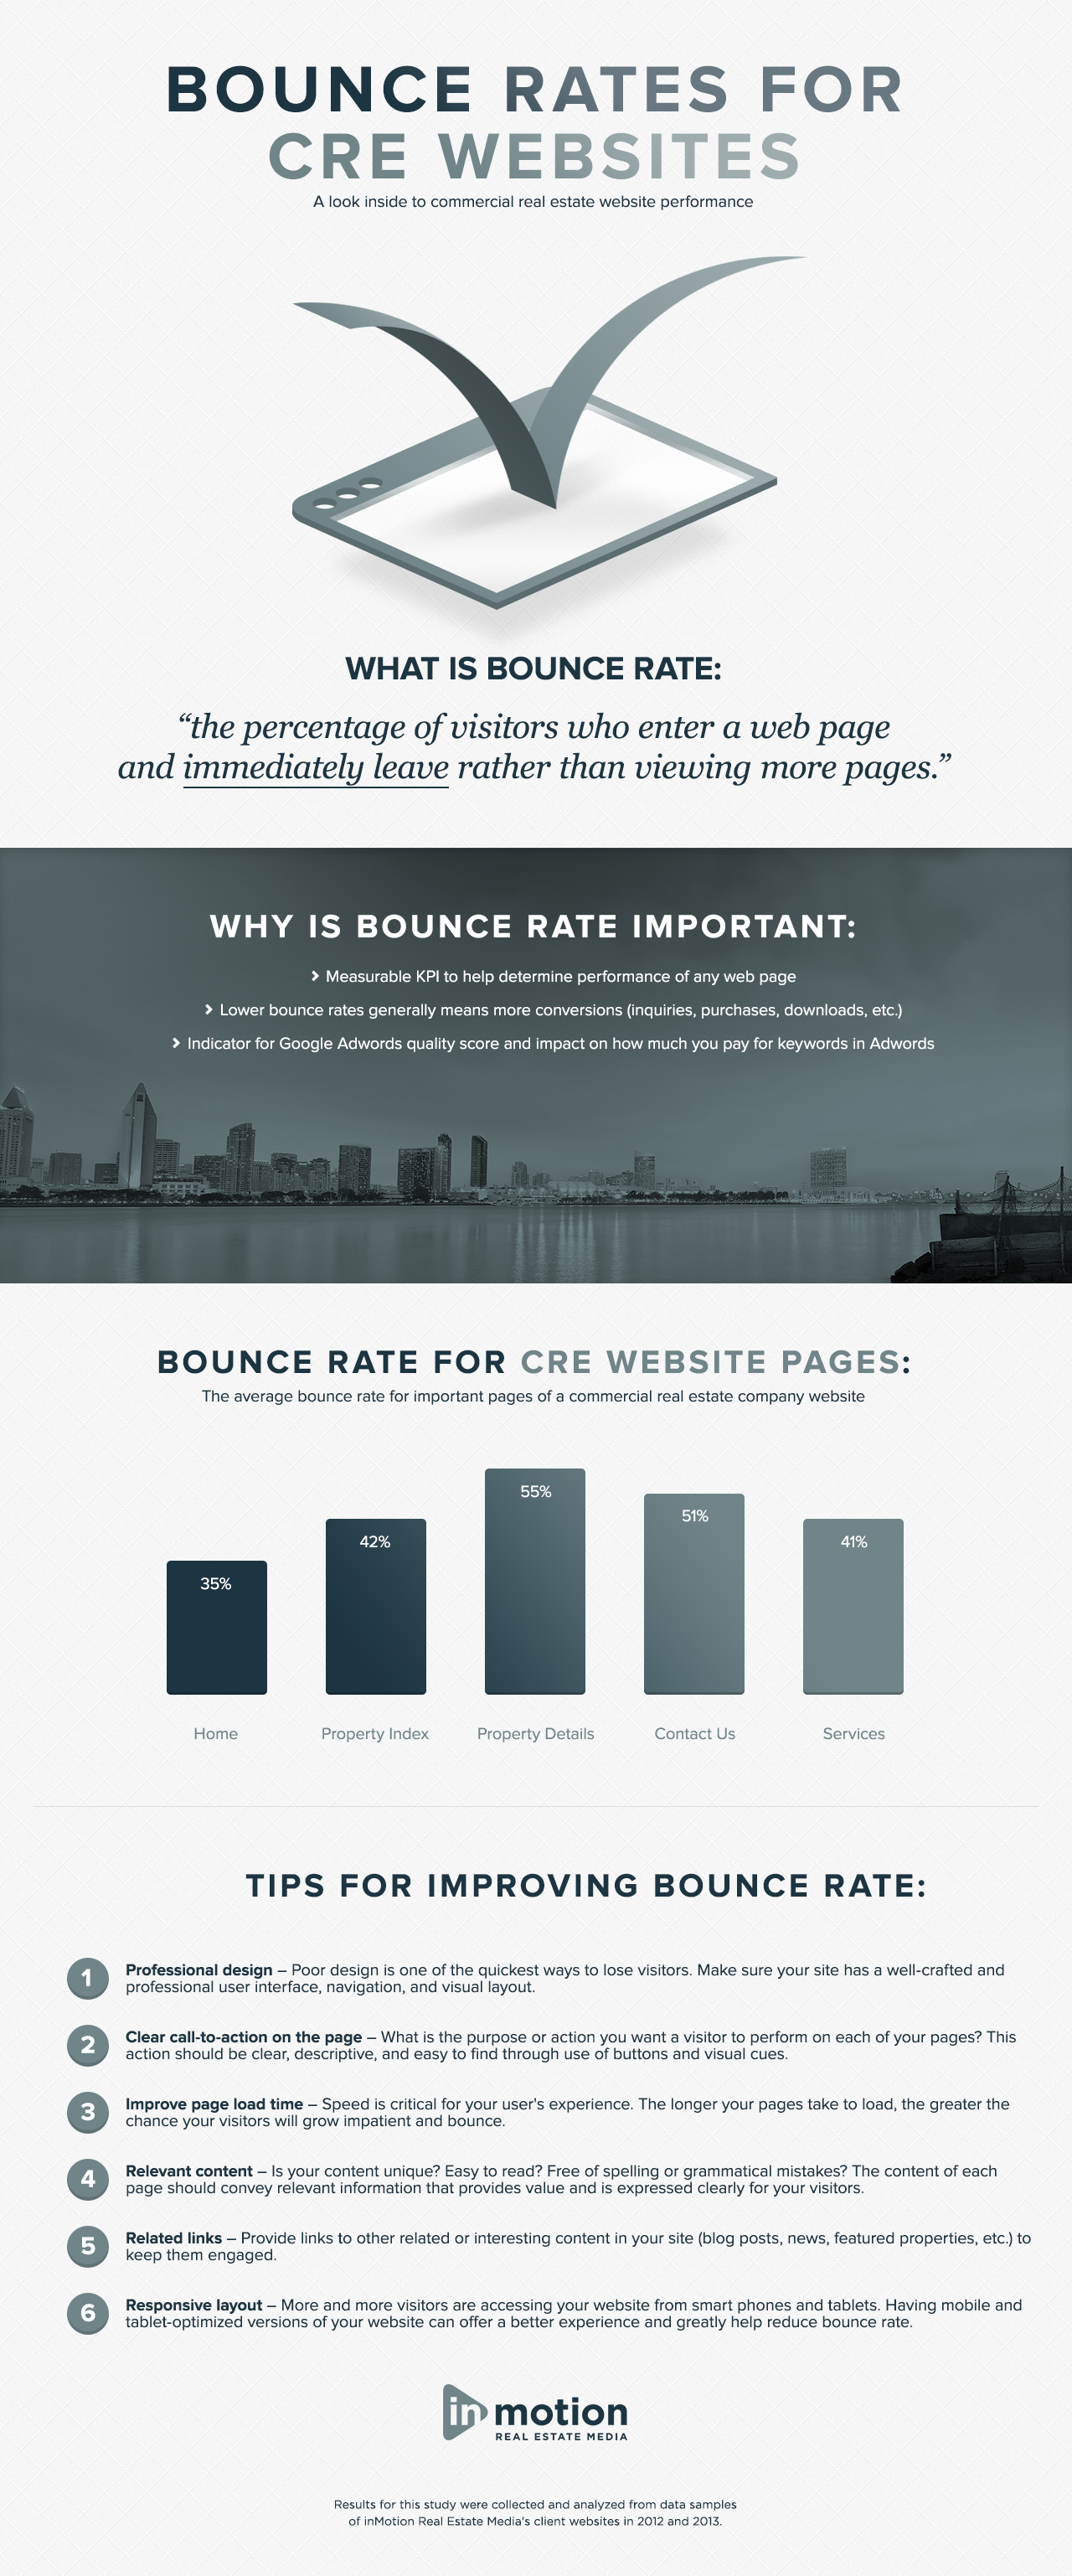 Bounce rate for real estate websites